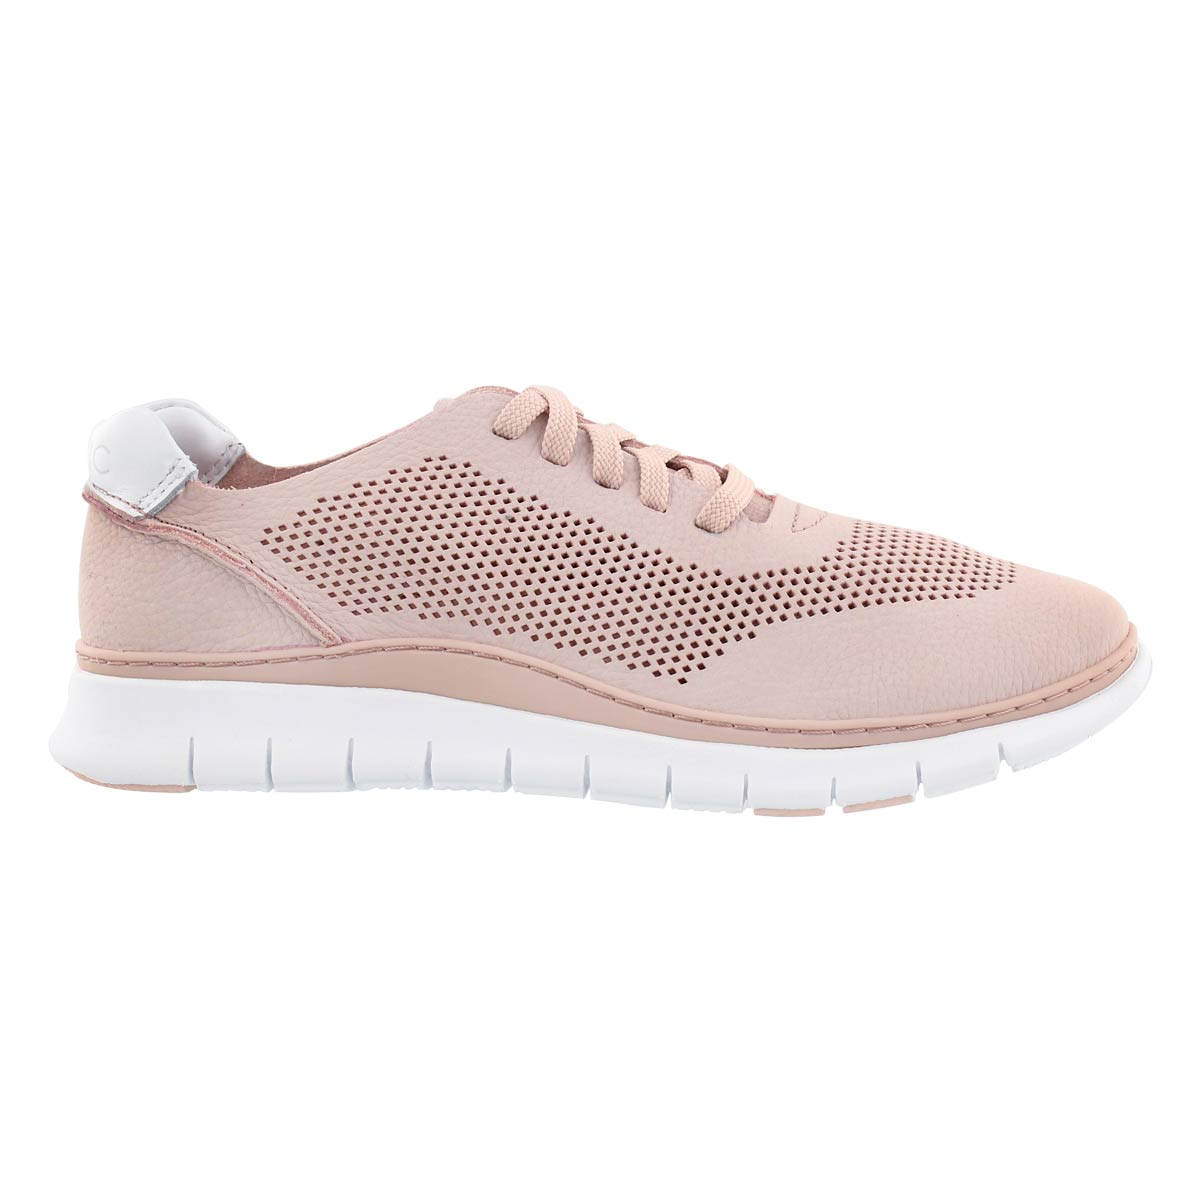 Lds Joey dusty pink lace up sneaker